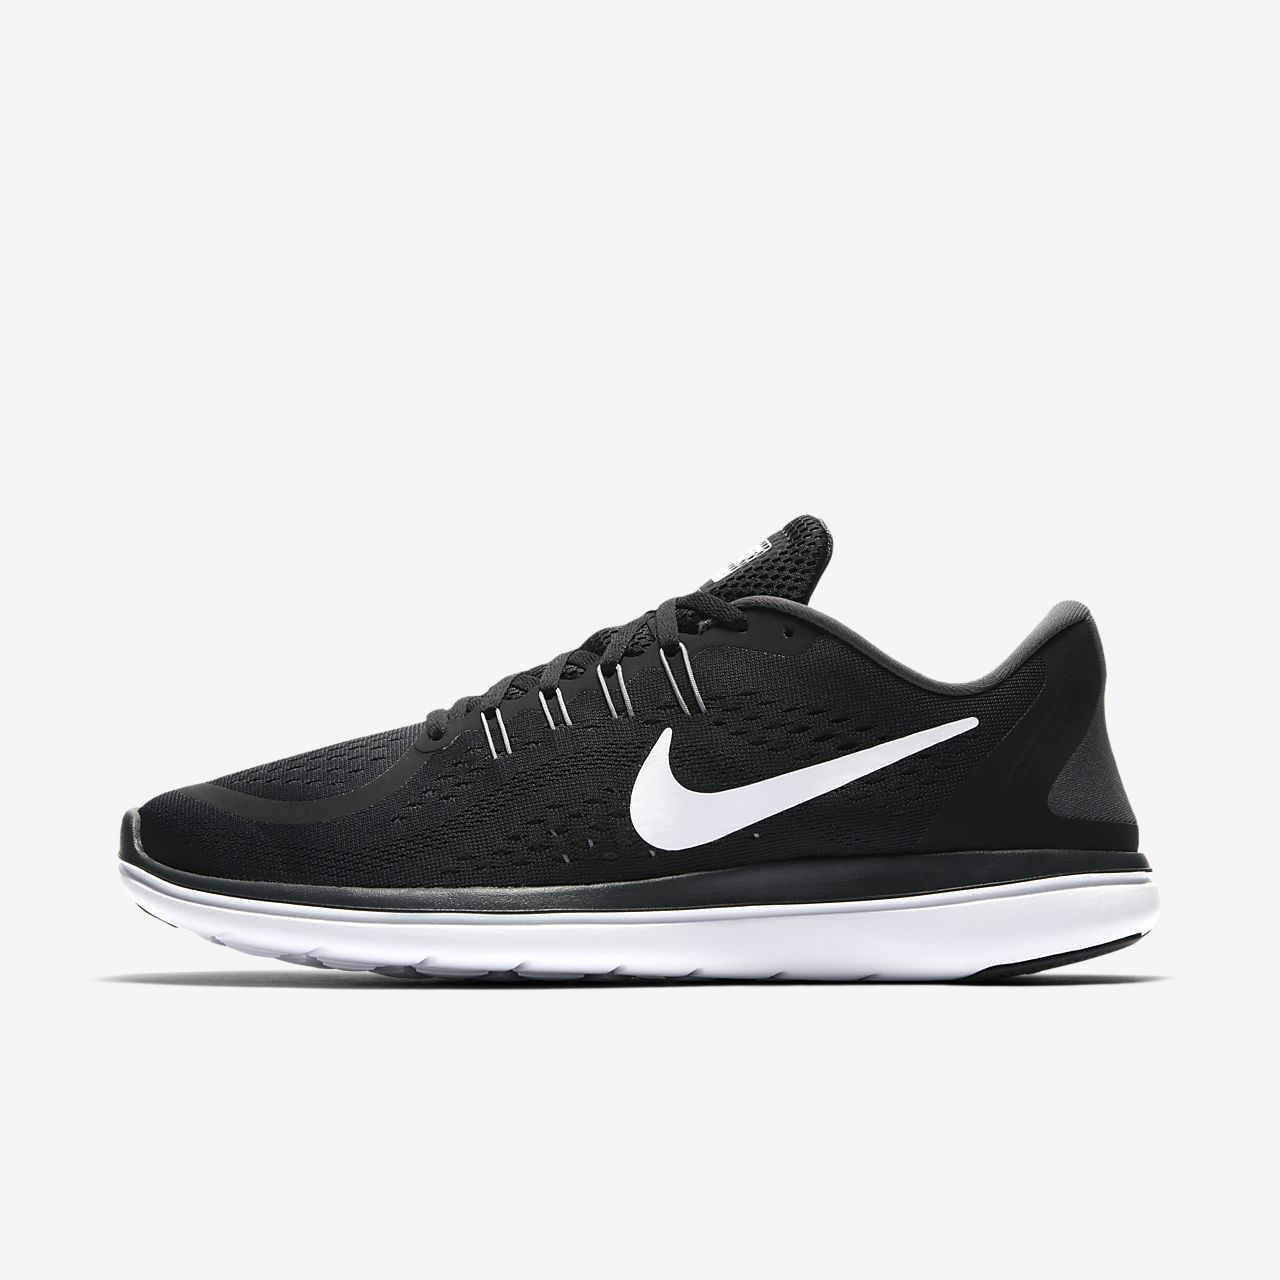 the latest 3d1c3 320b4 ... authentic nike flex 2017 rn mens running shoe d3d2d c0bac